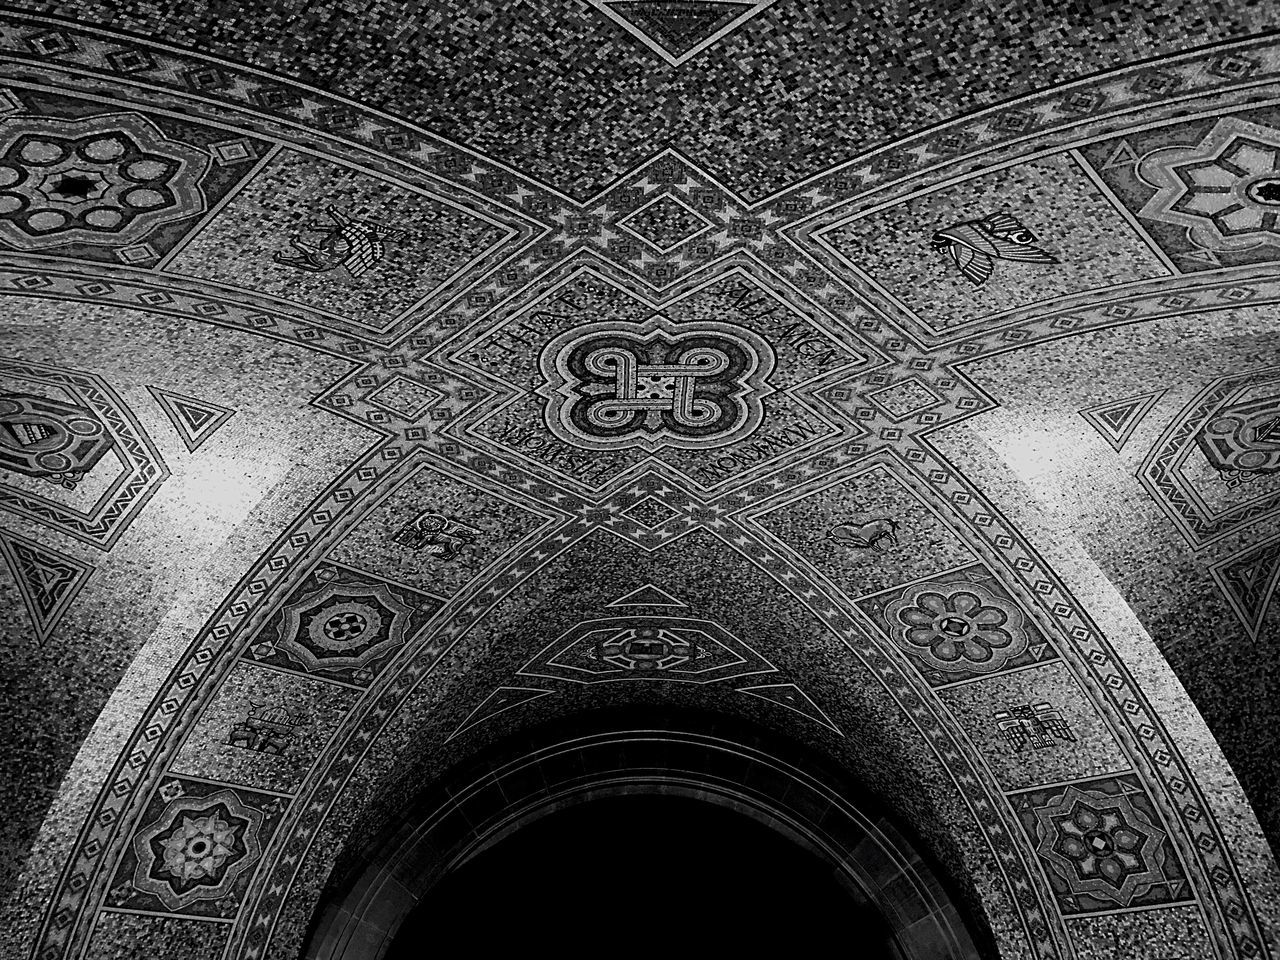 Backgrounds Pattern No People Close-up Day Blackandwhite Black & White Black And White Black And White Photography Blackandwhite Photography Monochrome Photography Abstract Photography Monochromatic Monochrome Architecture Pattern, Texture, Shape And Form Ornaments Decoration Decor Decorating Interior Design